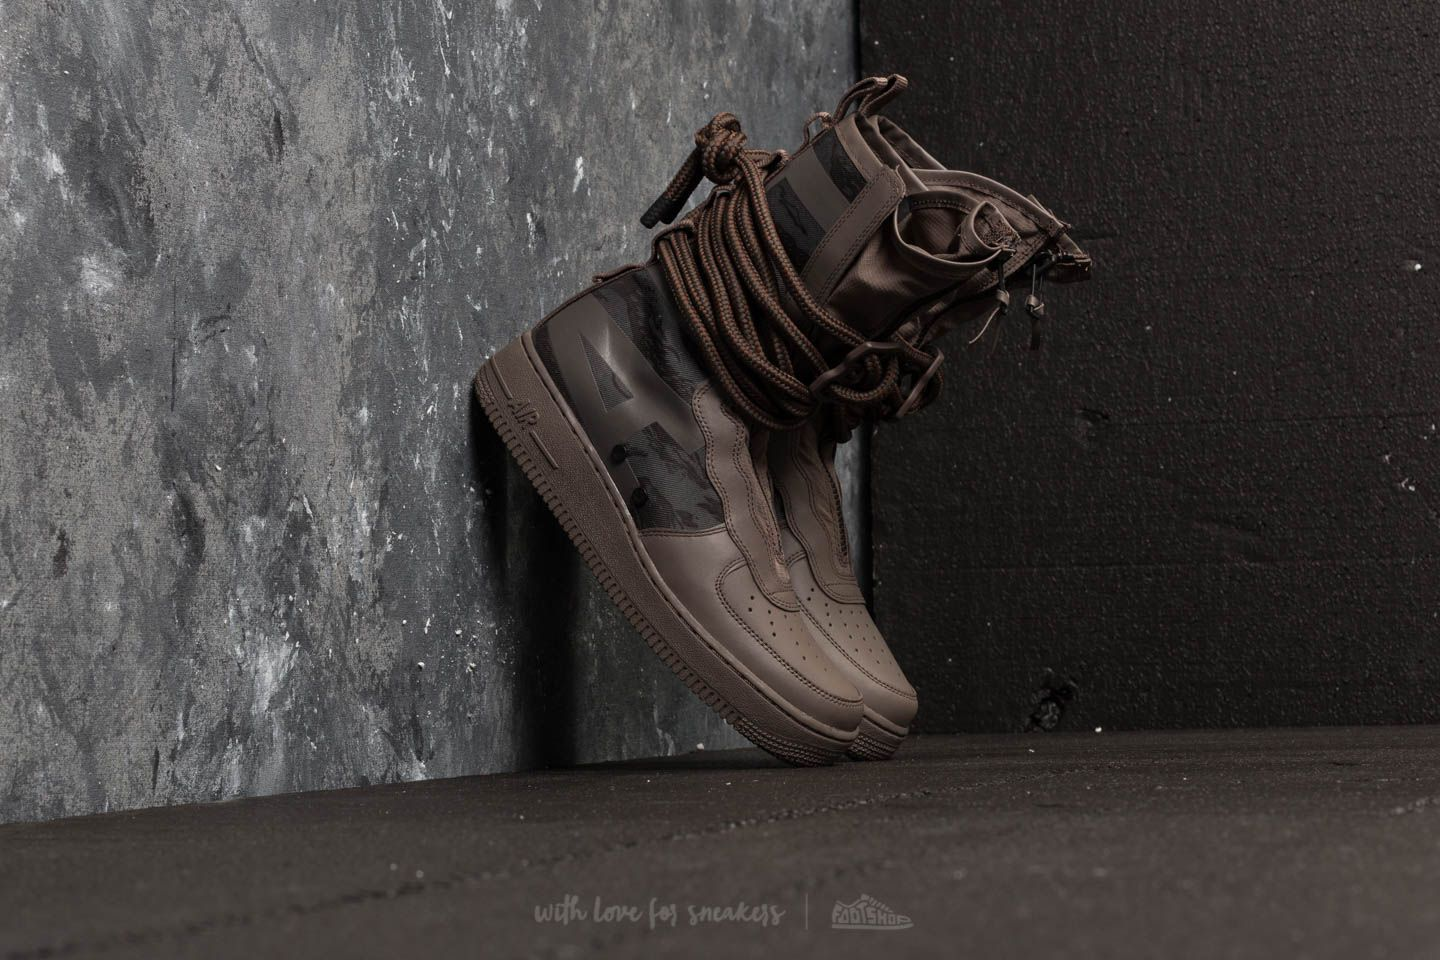 Nike Air Force 1 SF Hi Ridgerock  Black-Sequoia  45e5b3270ba3